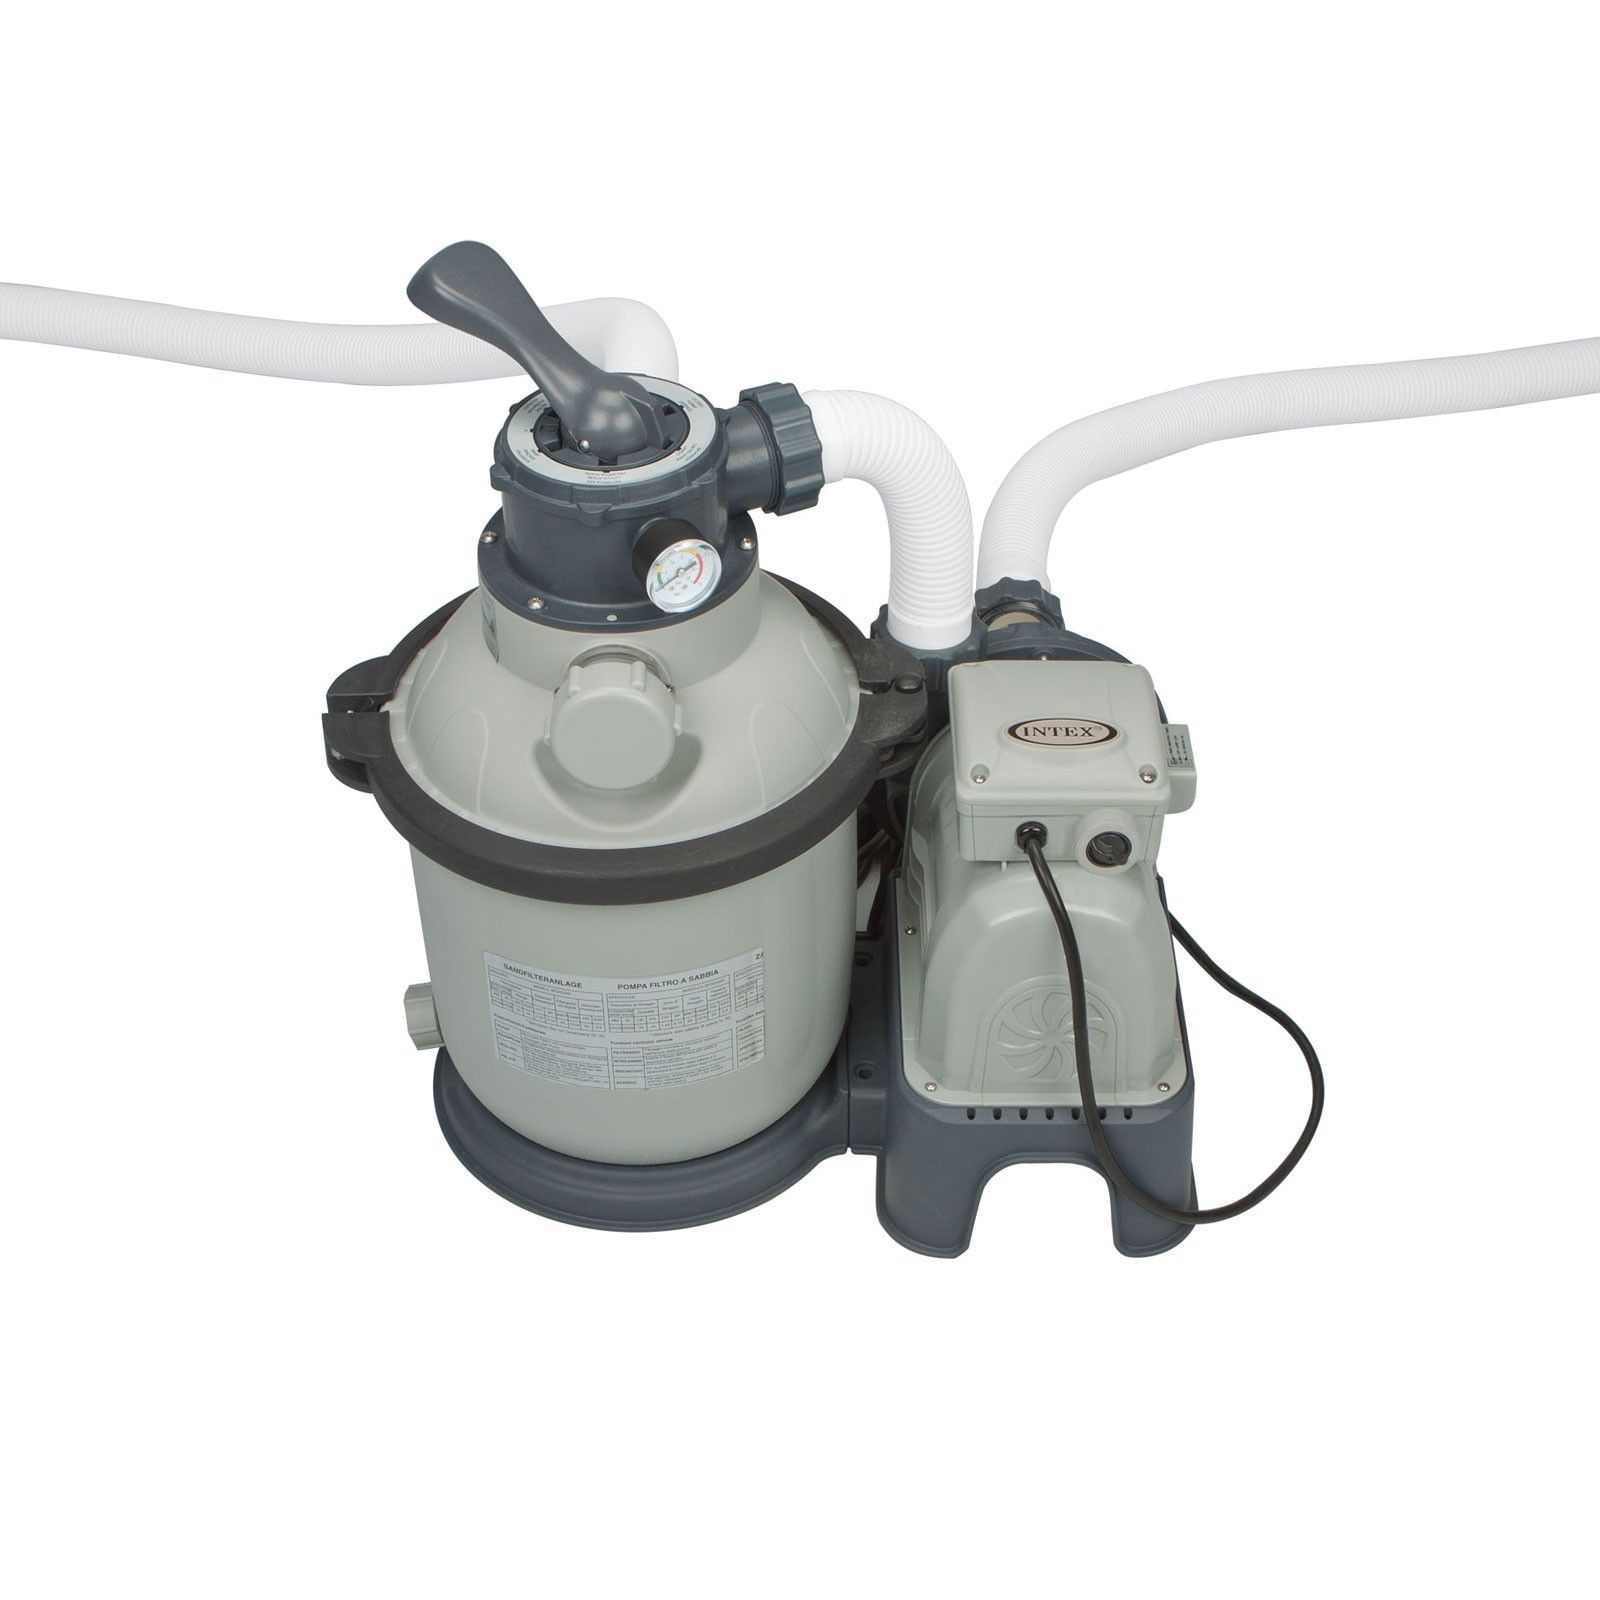 Intex 1200 Gph Krystal Clear Above Ground Pool Sand Filter Pump Set 28643eg 10078257306487 Ebay